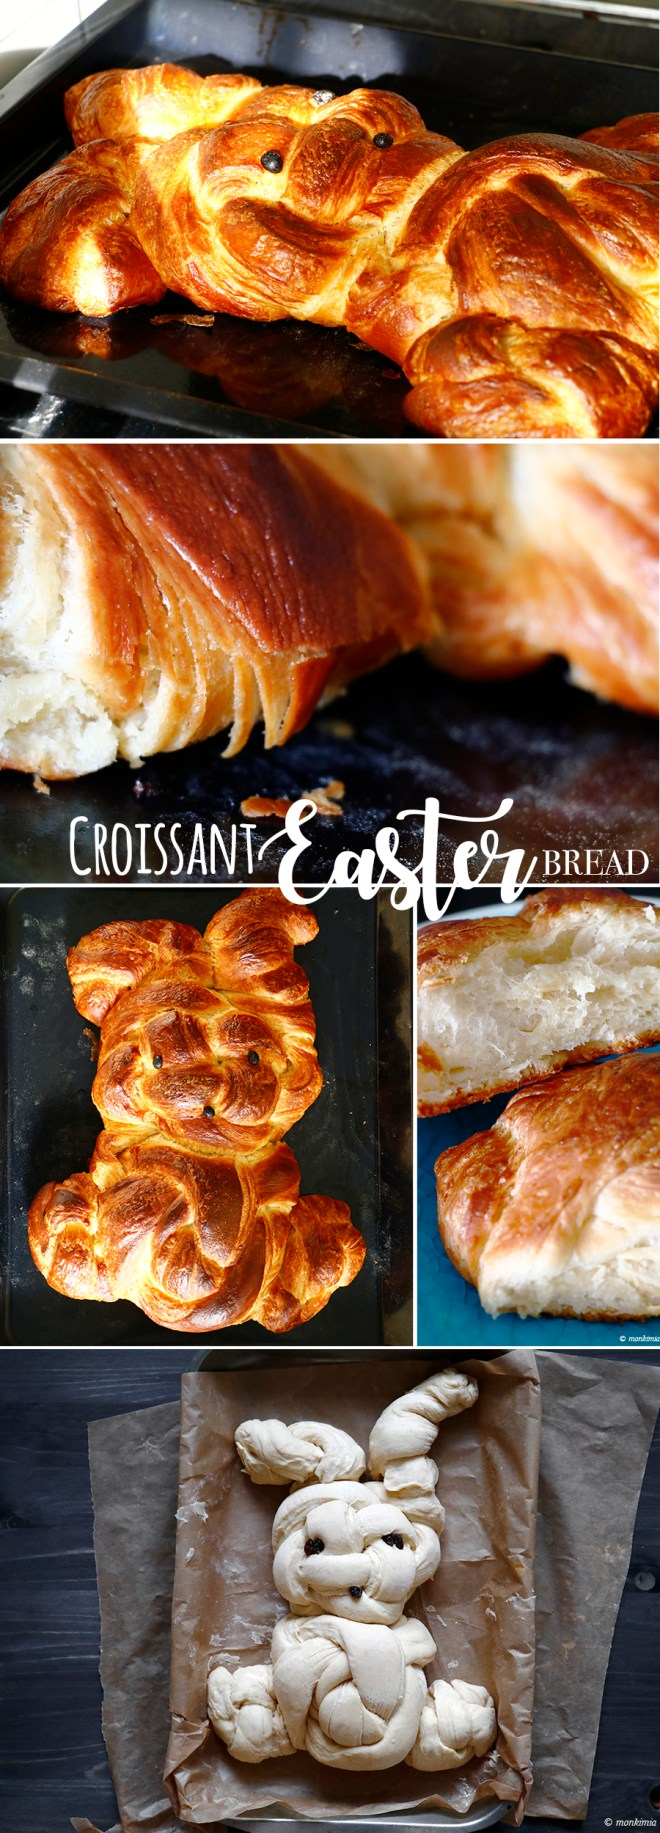 Croissant easter bread recipe